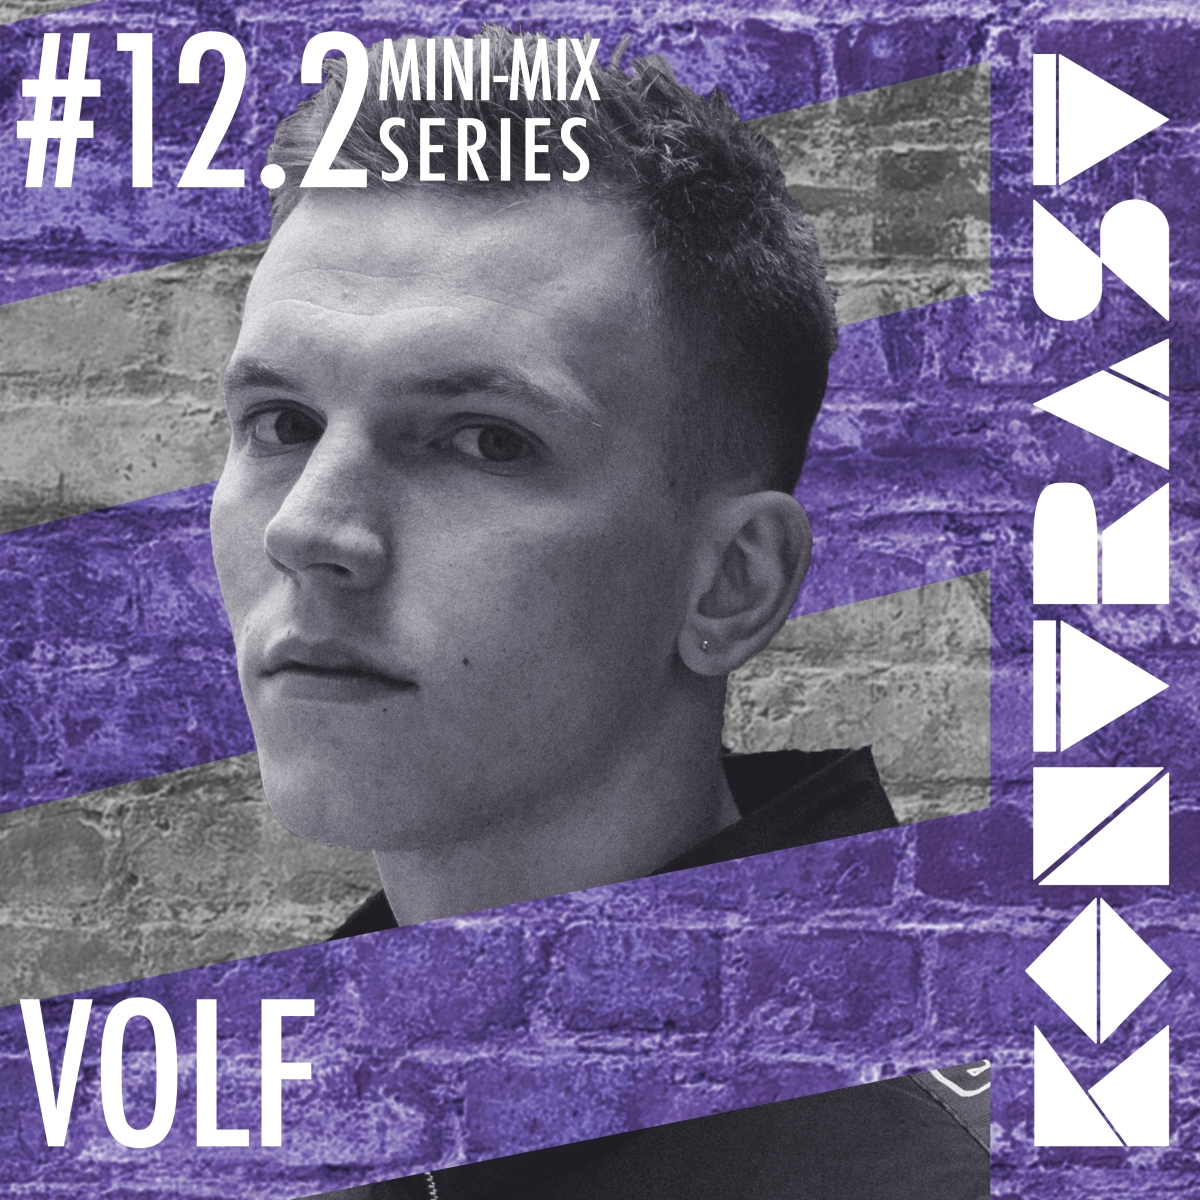 KONTRAST Mini-Mix #12.2 – VOLF